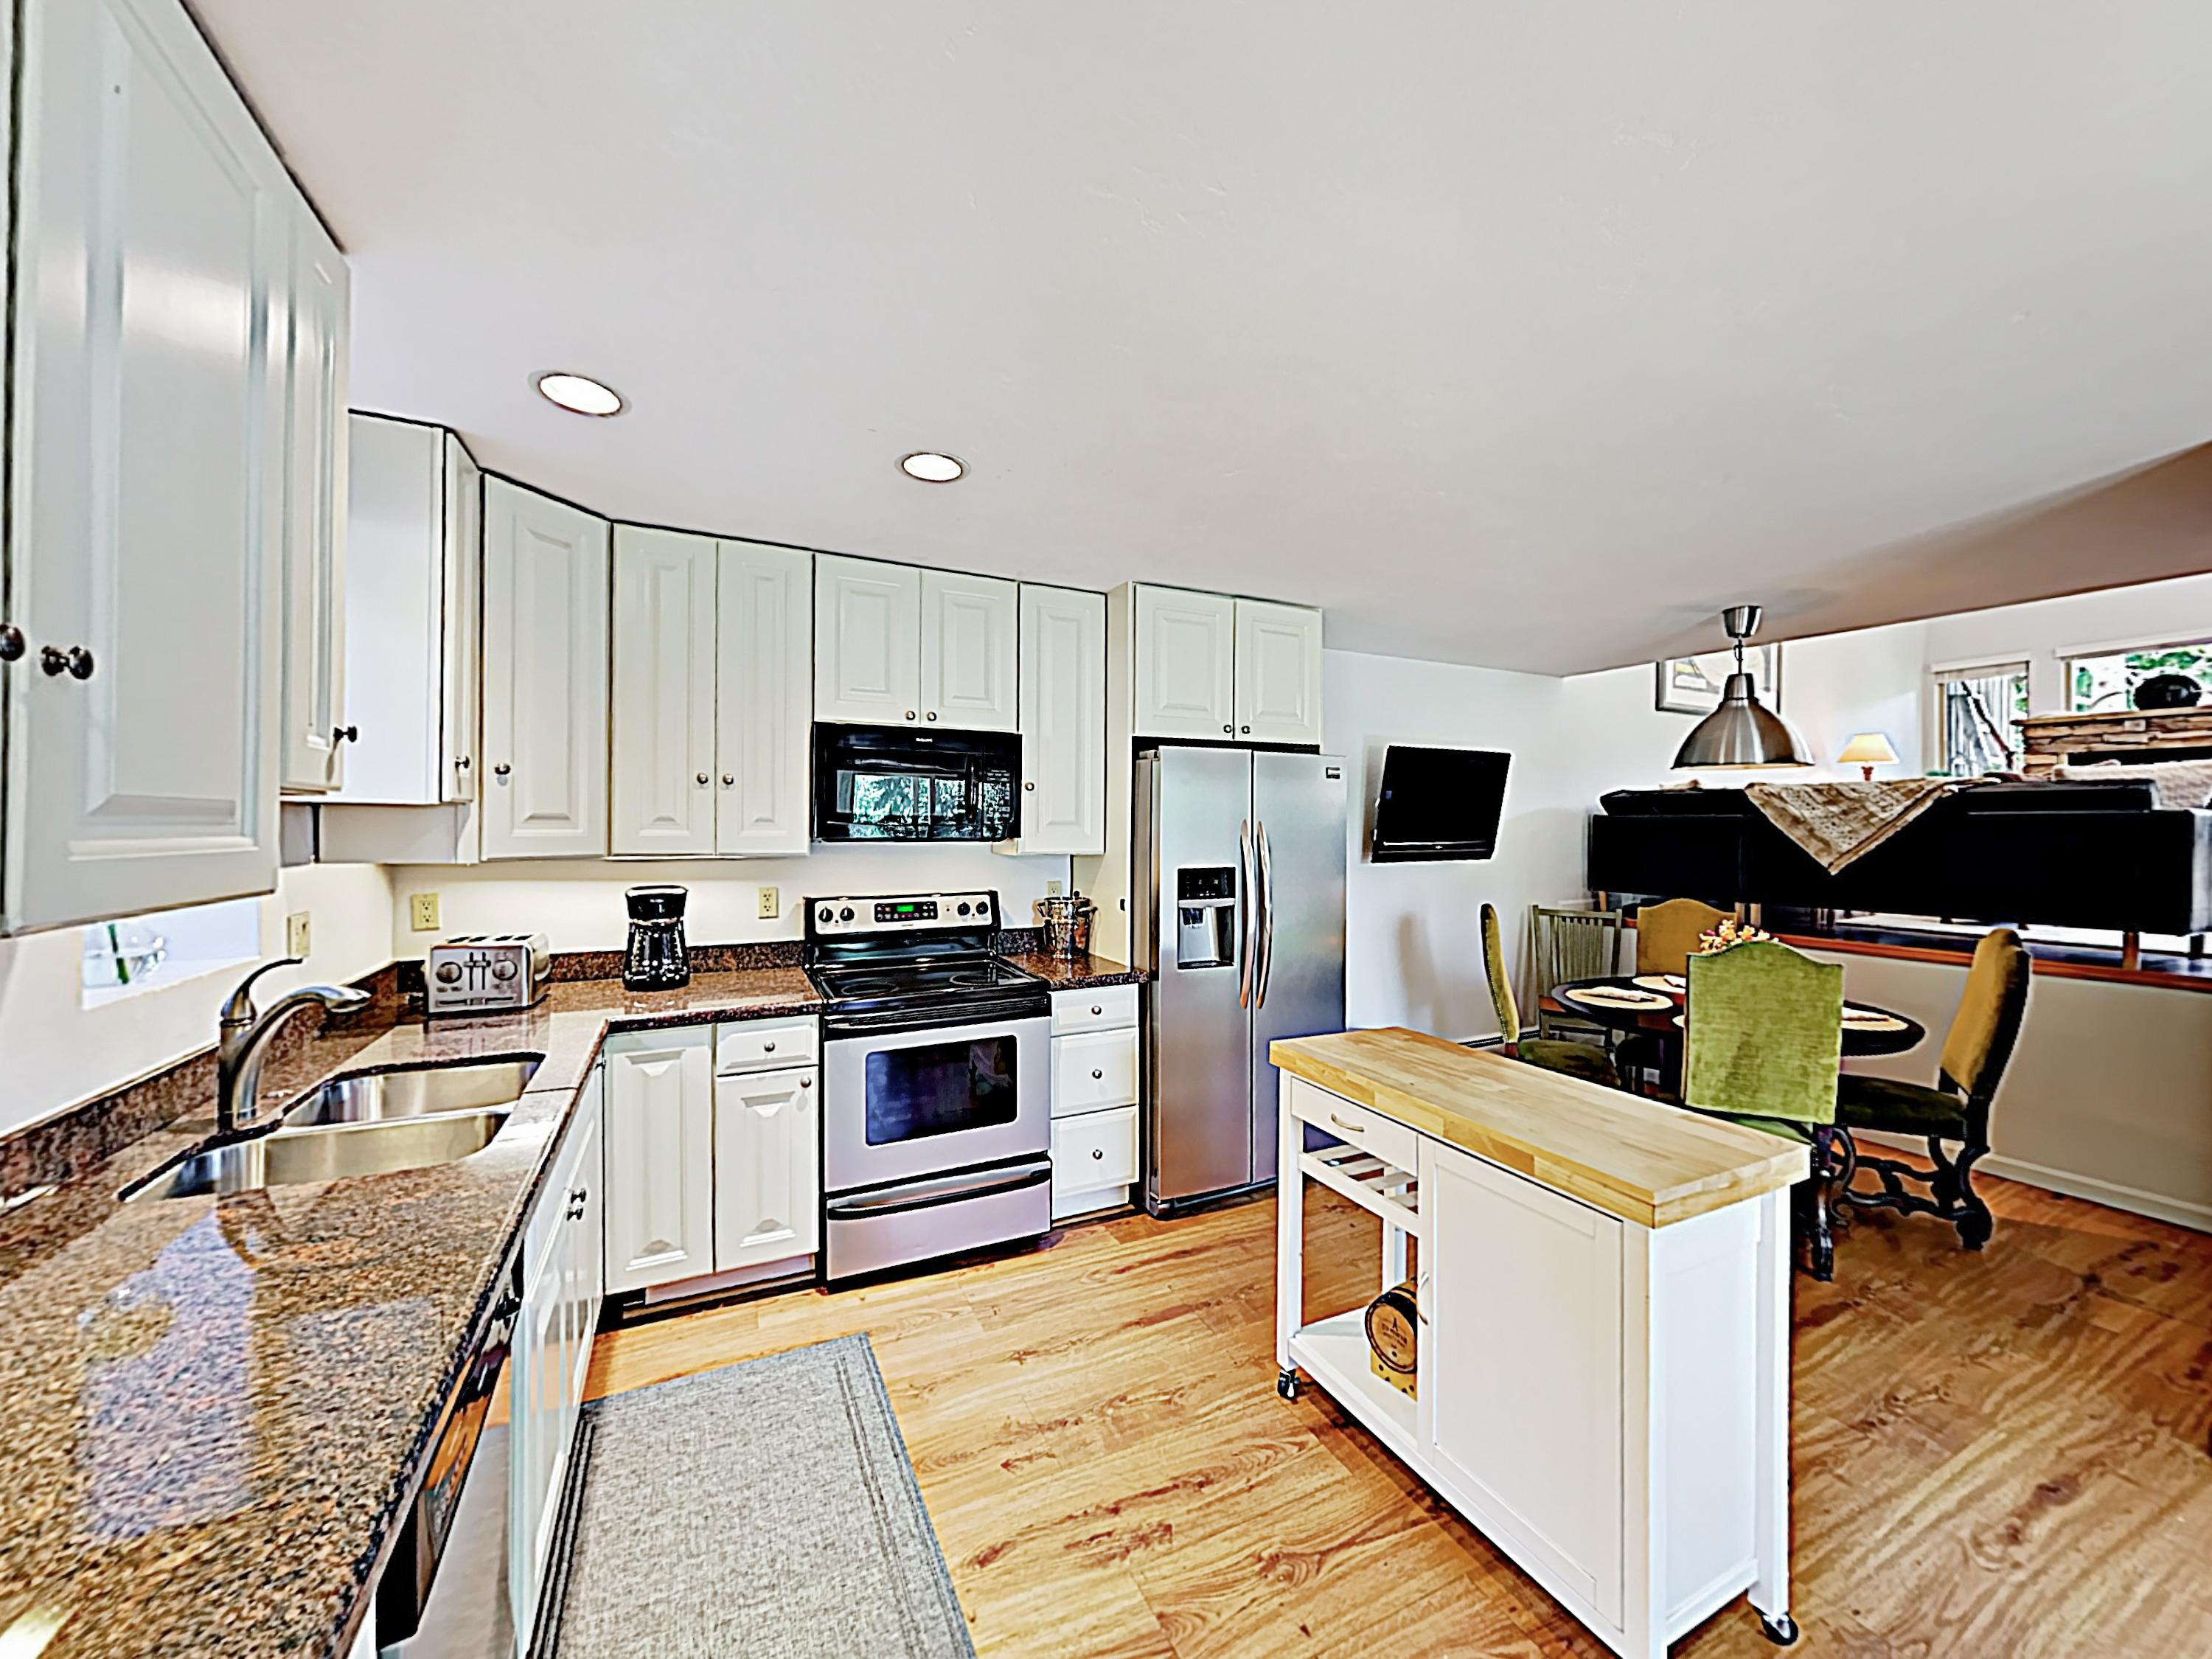 Whip up hearty recipes in the fully stocked kitchen, detailed with granite countertops and stainless steel appliances.